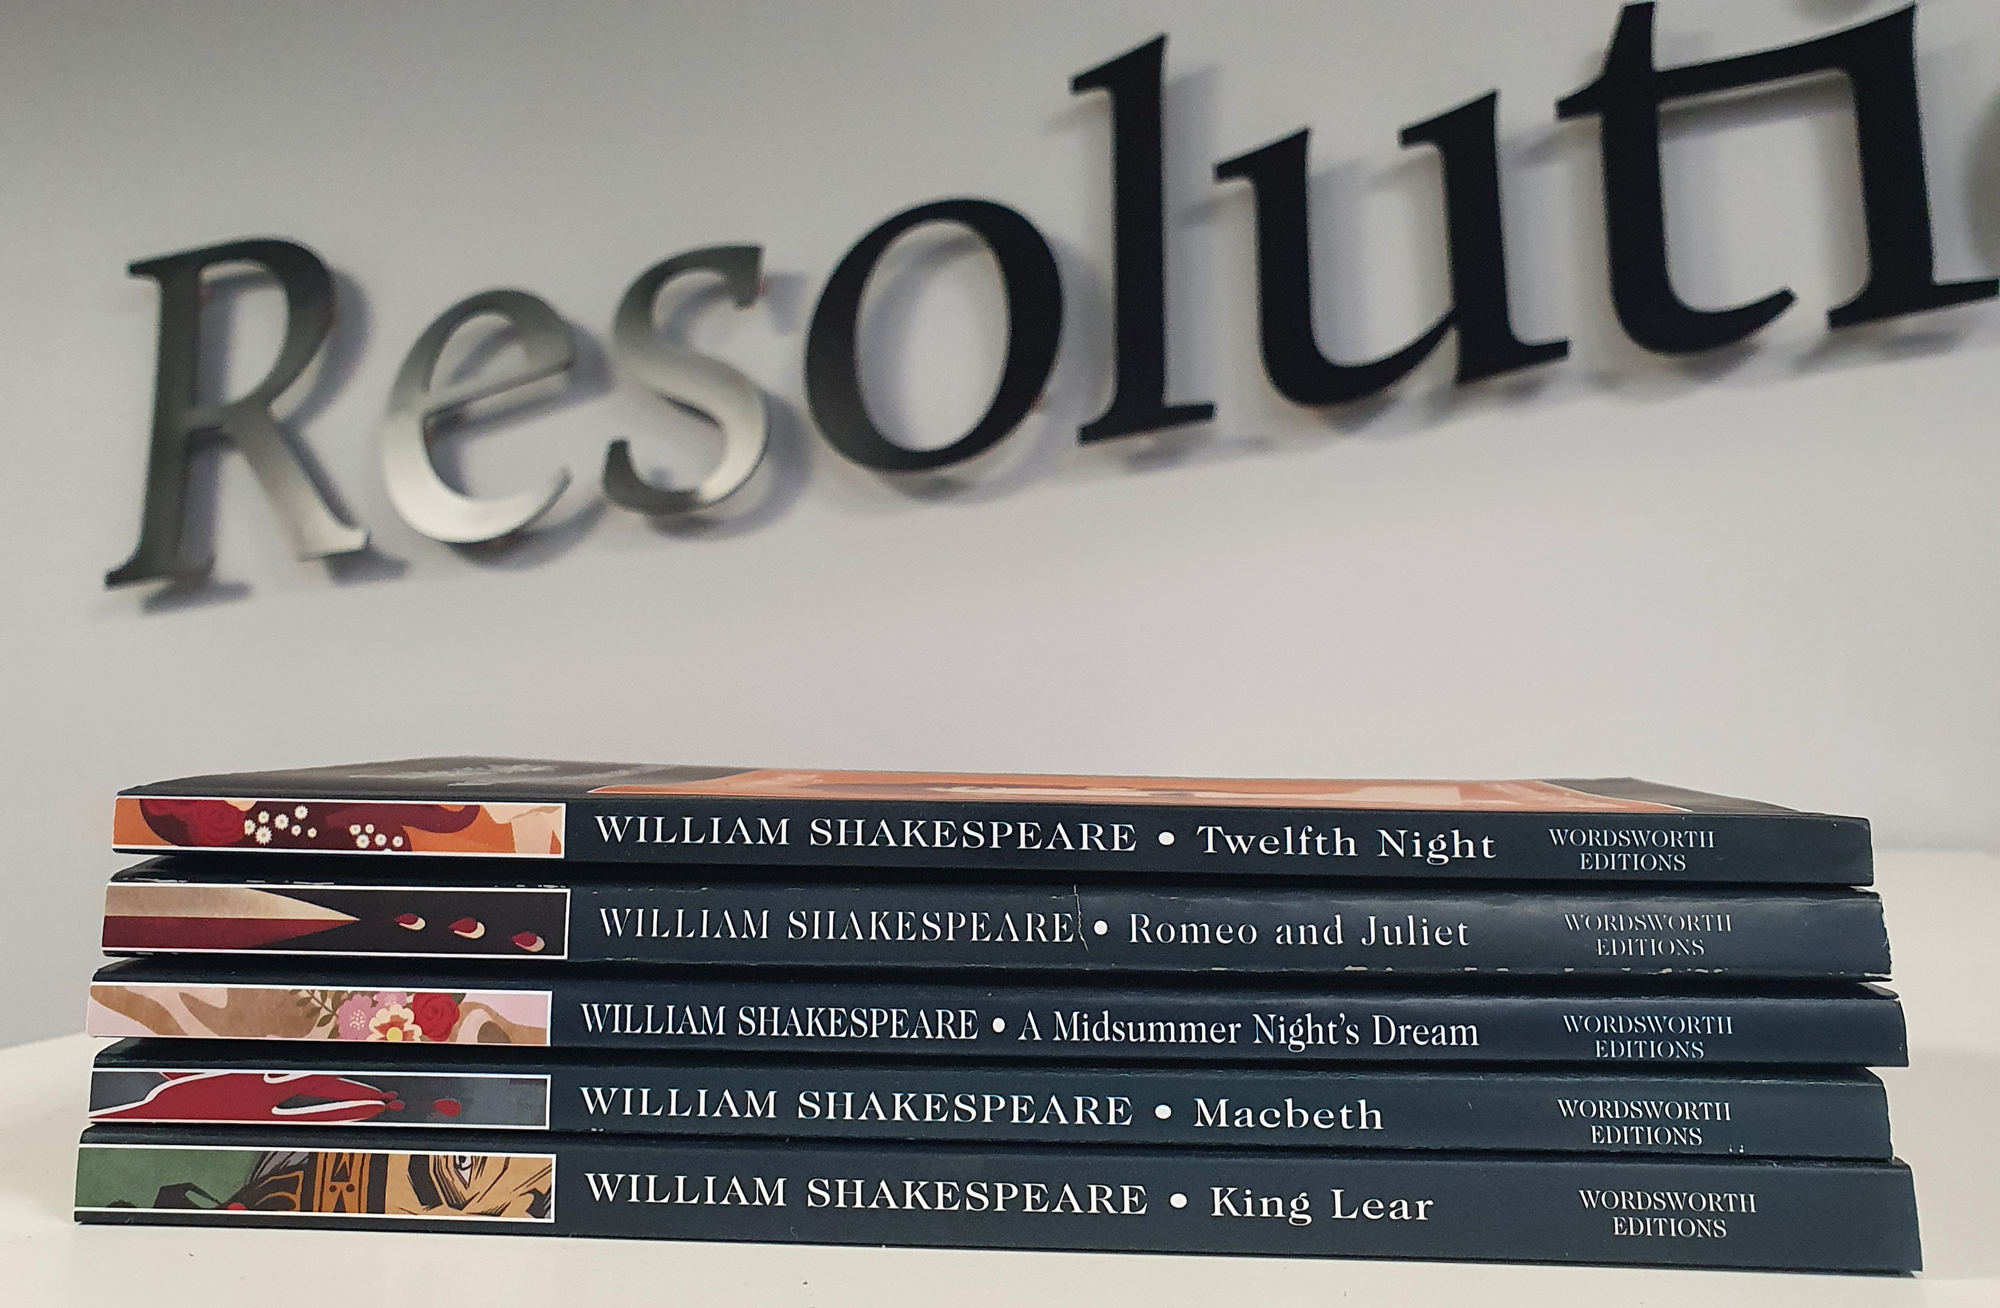 Rhythmic writing – What we can learn from Shakespeare when marketing for business